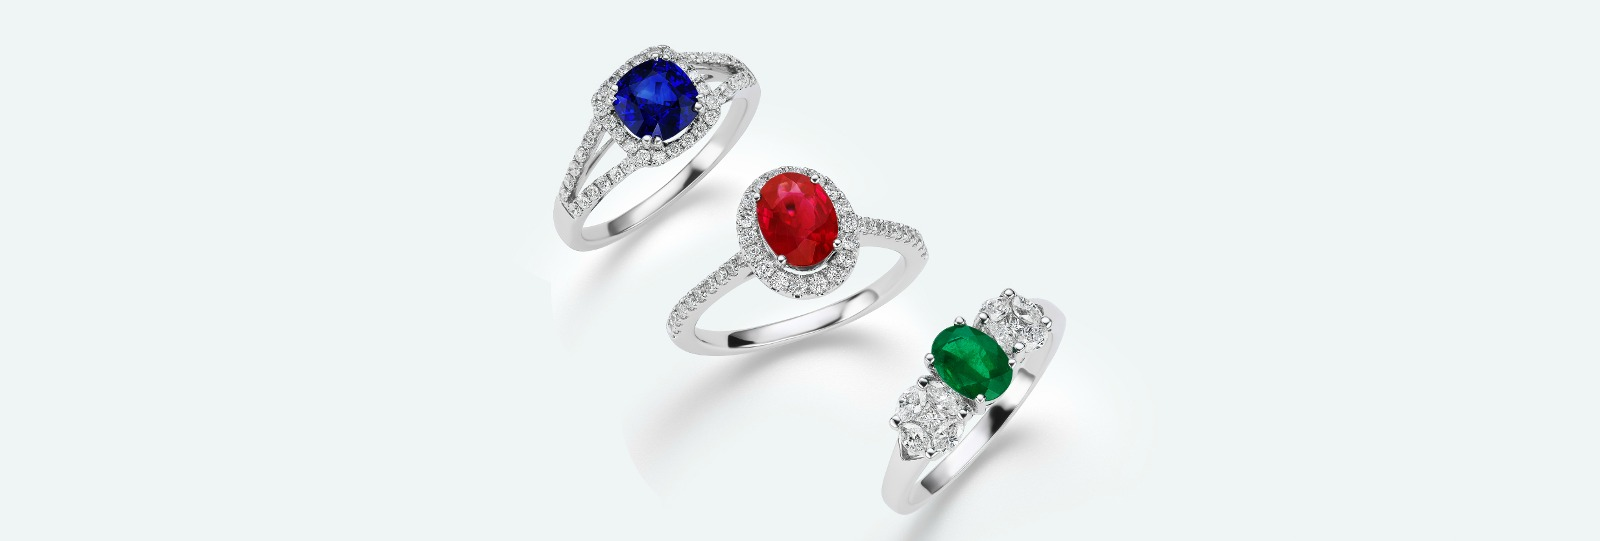 coloured entwined best plante how gemstone rings blue color sapp jewelry choose engagement to the one